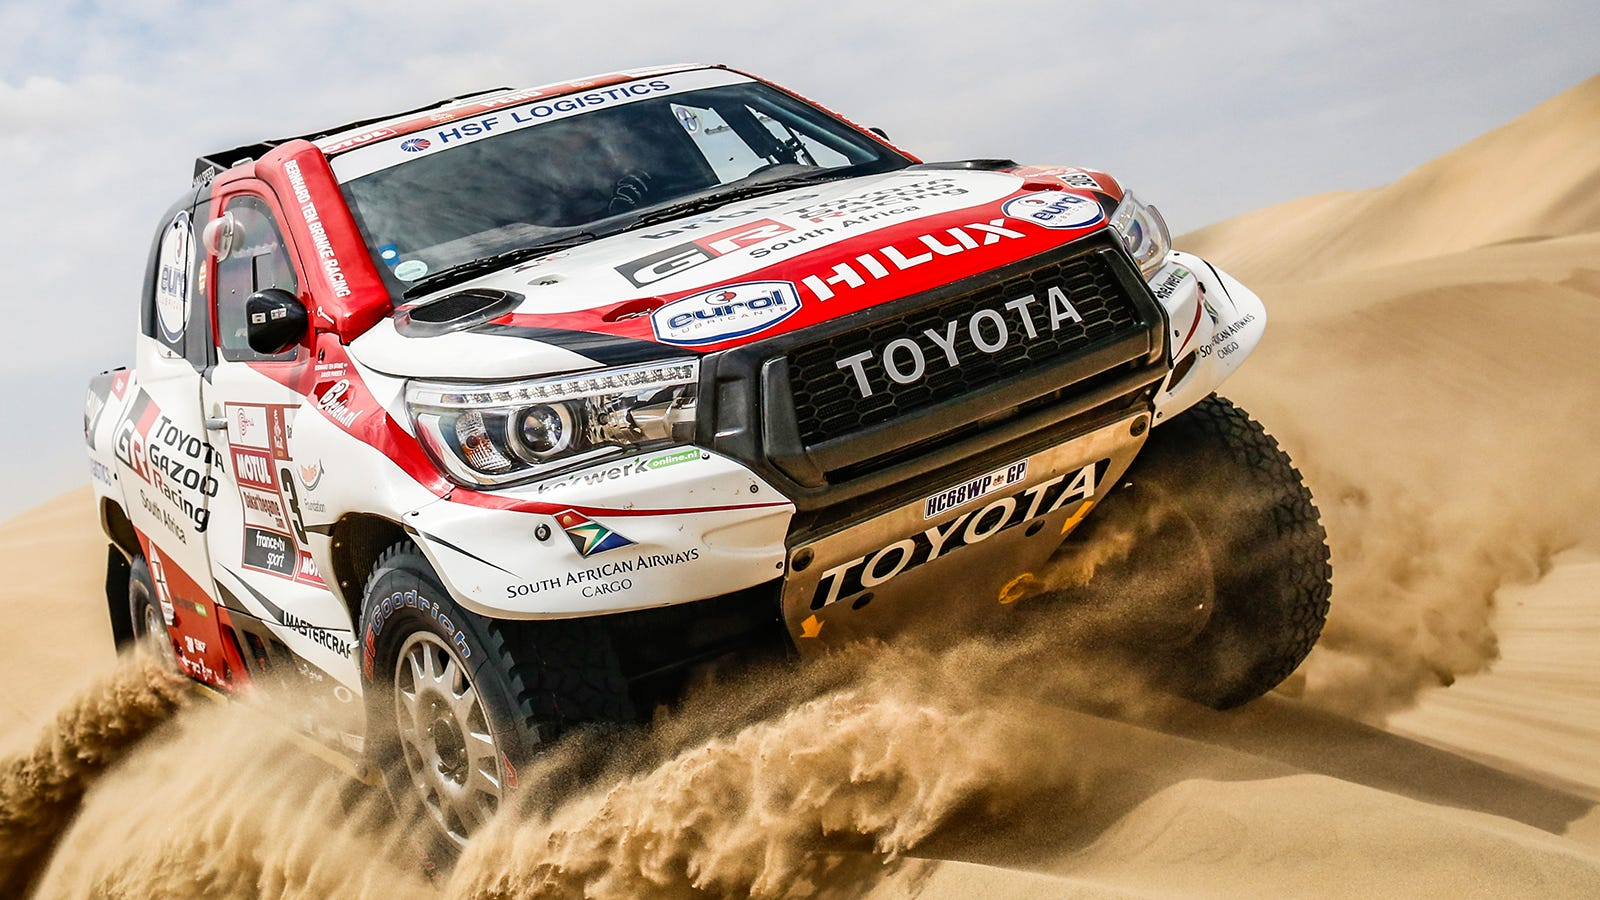 Here's Your Quick And Dirty 2019 Dakar Rally Winners Round Up